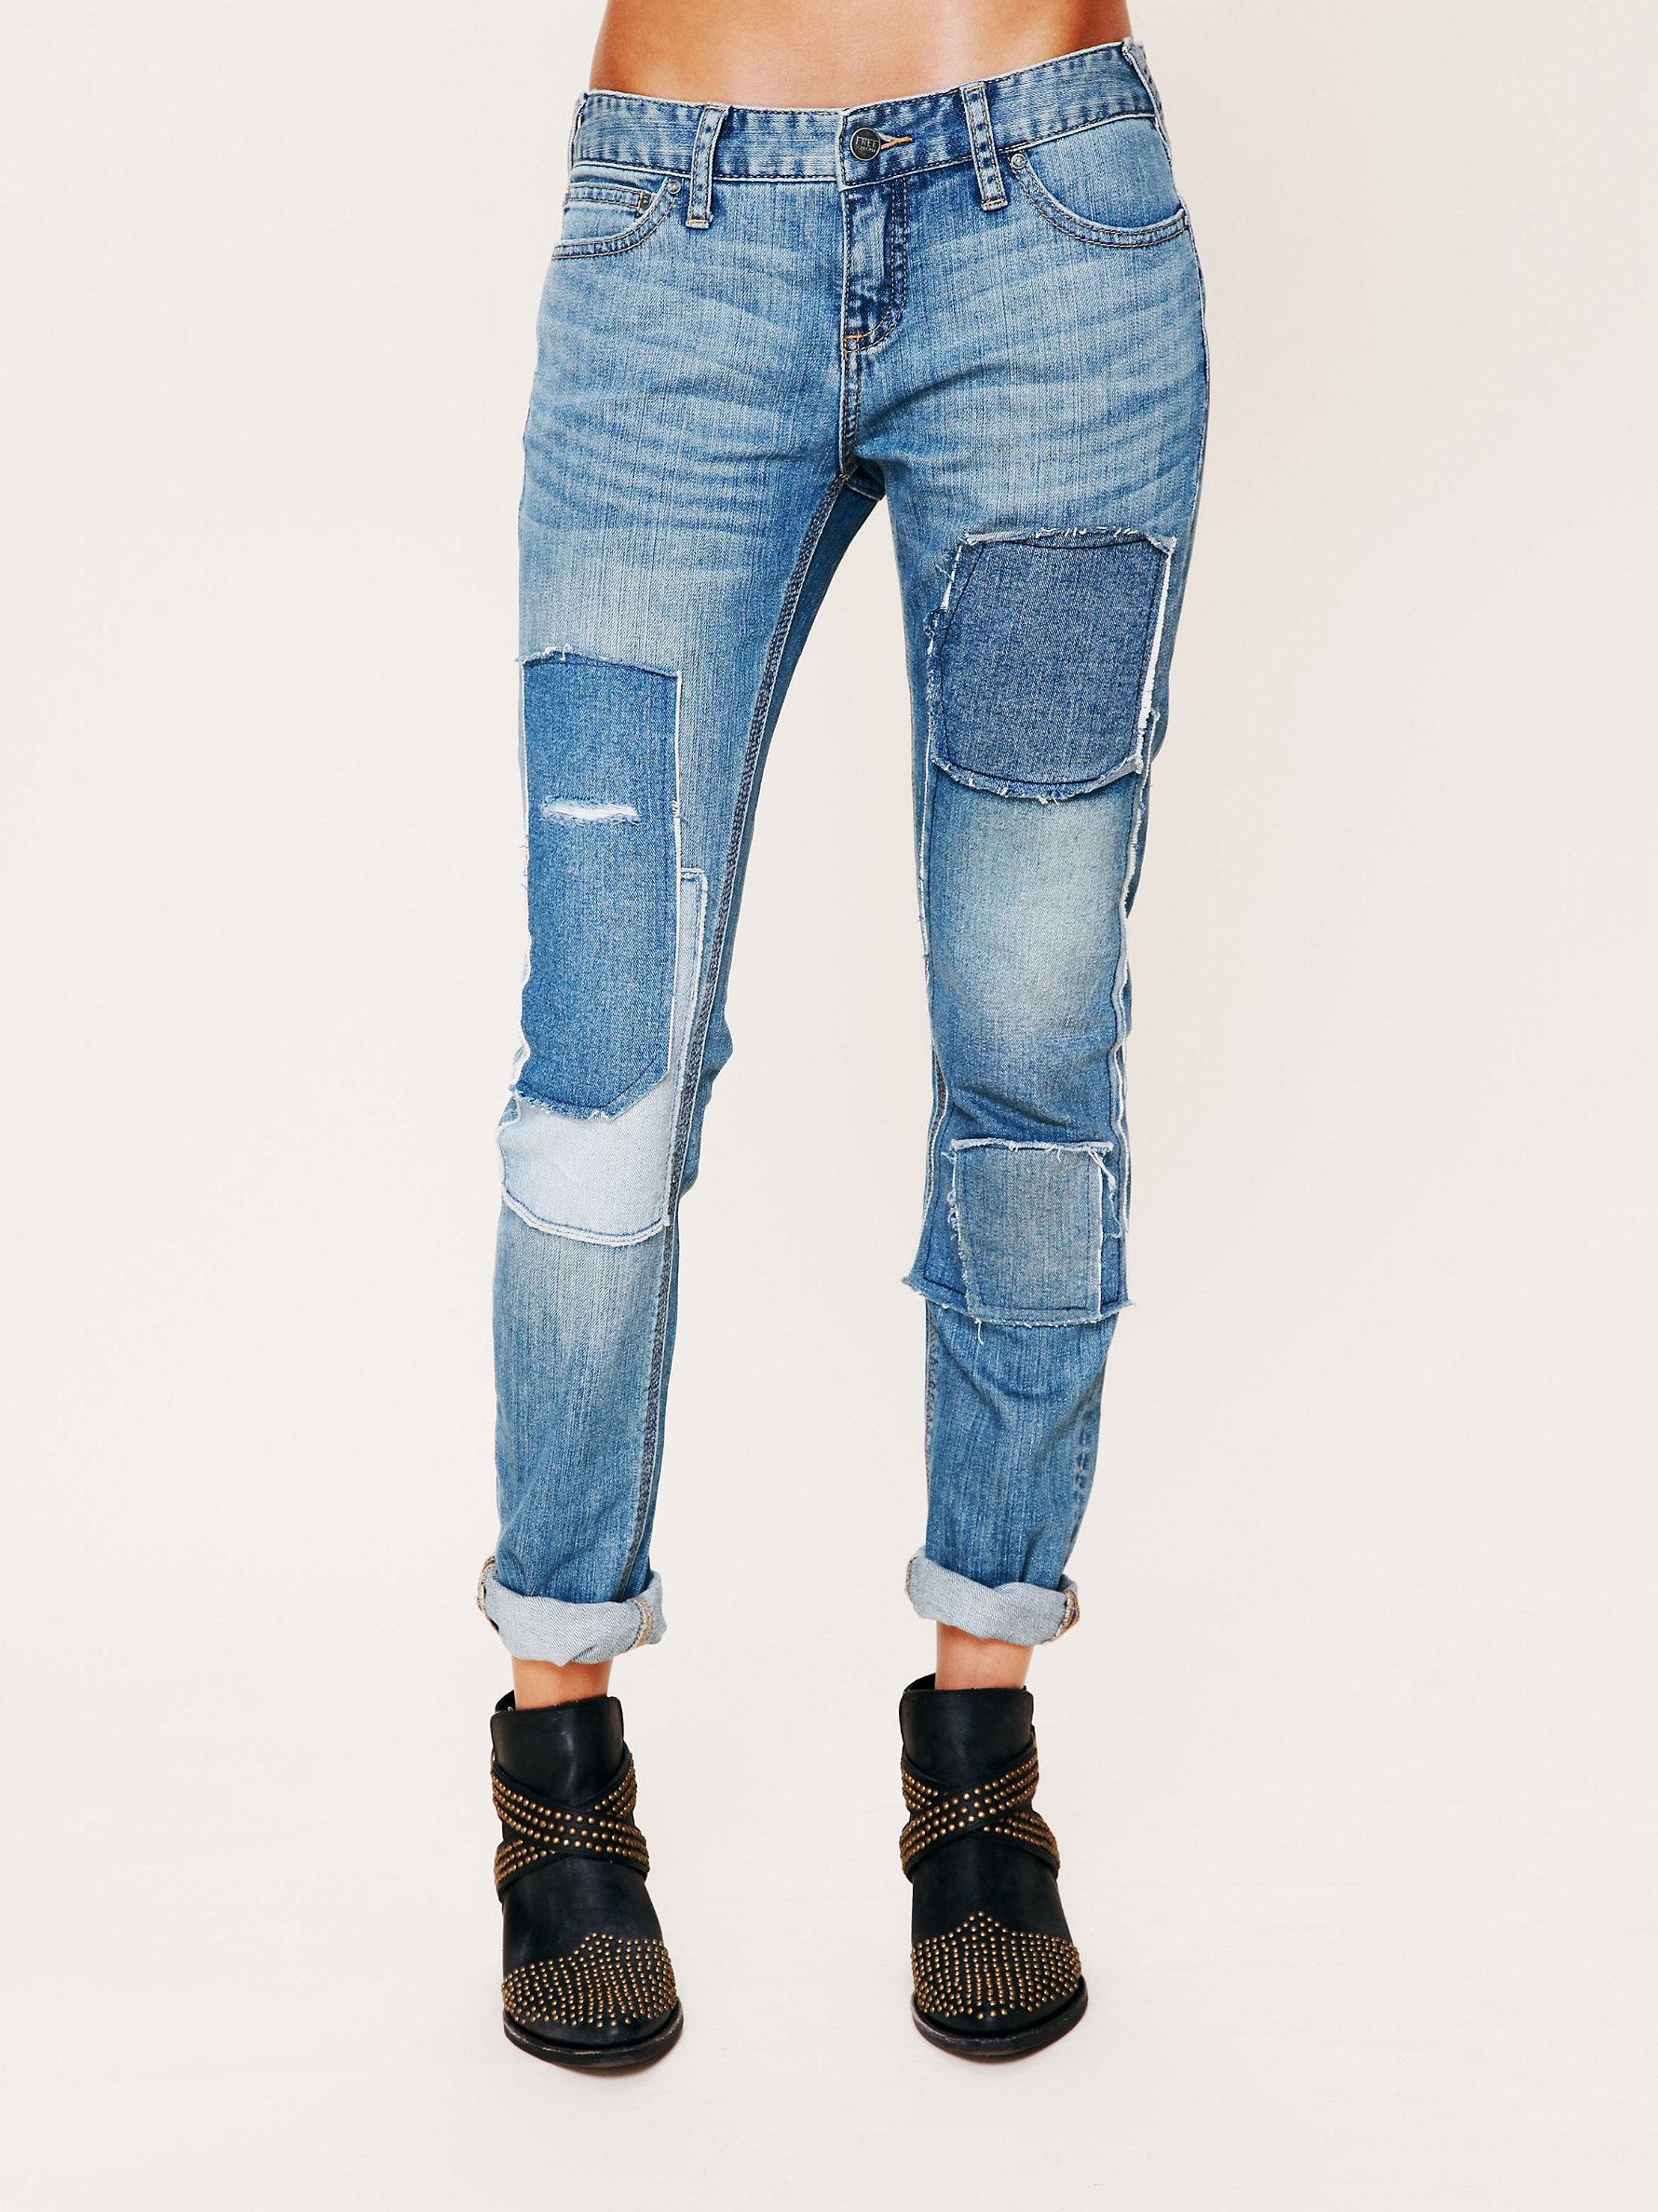 Patched Skinny Jeans by Free People